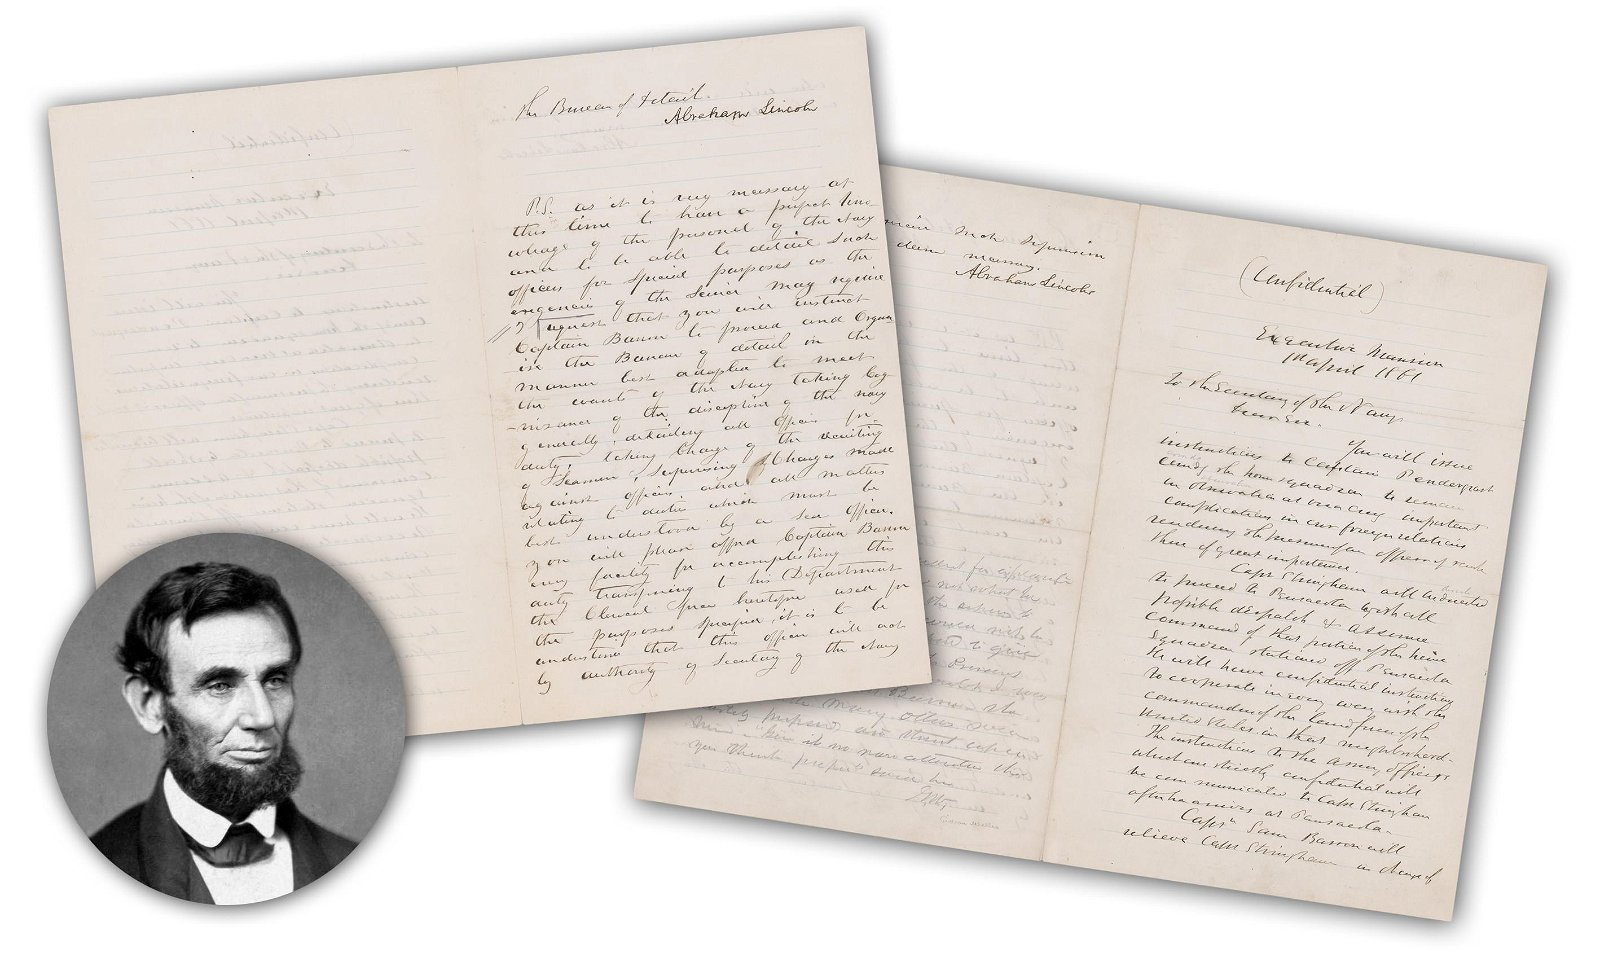 A. Lincoln 2x Signed Letter, Preparations for Civil War